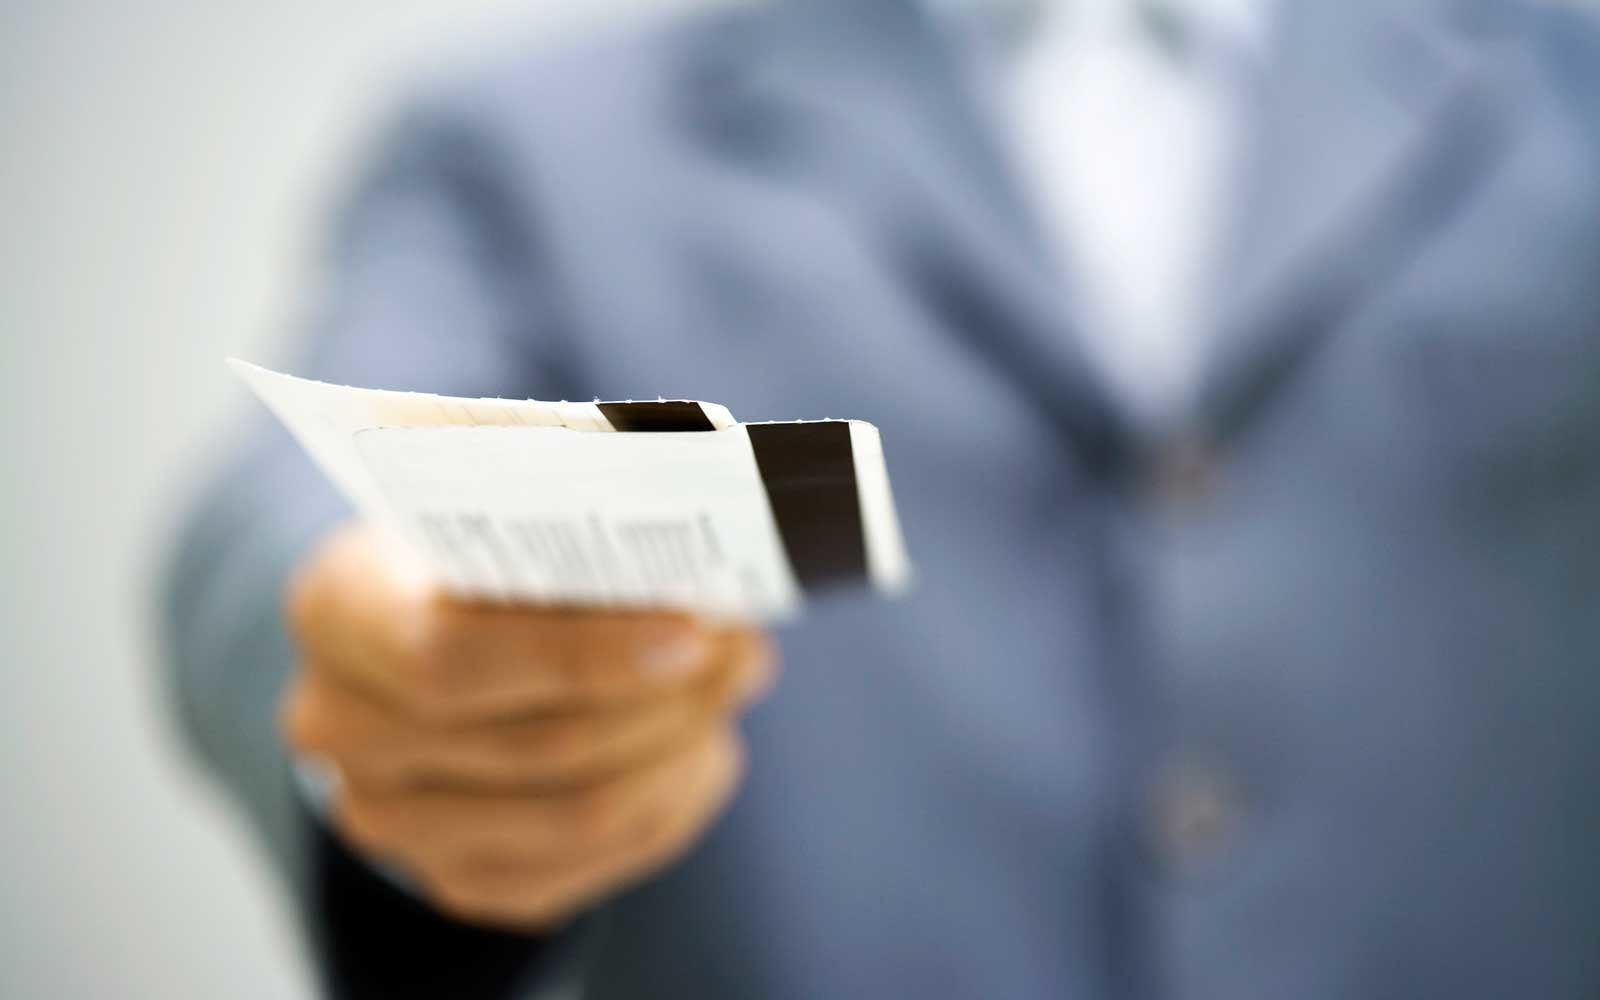 Man with airplane boarding passes